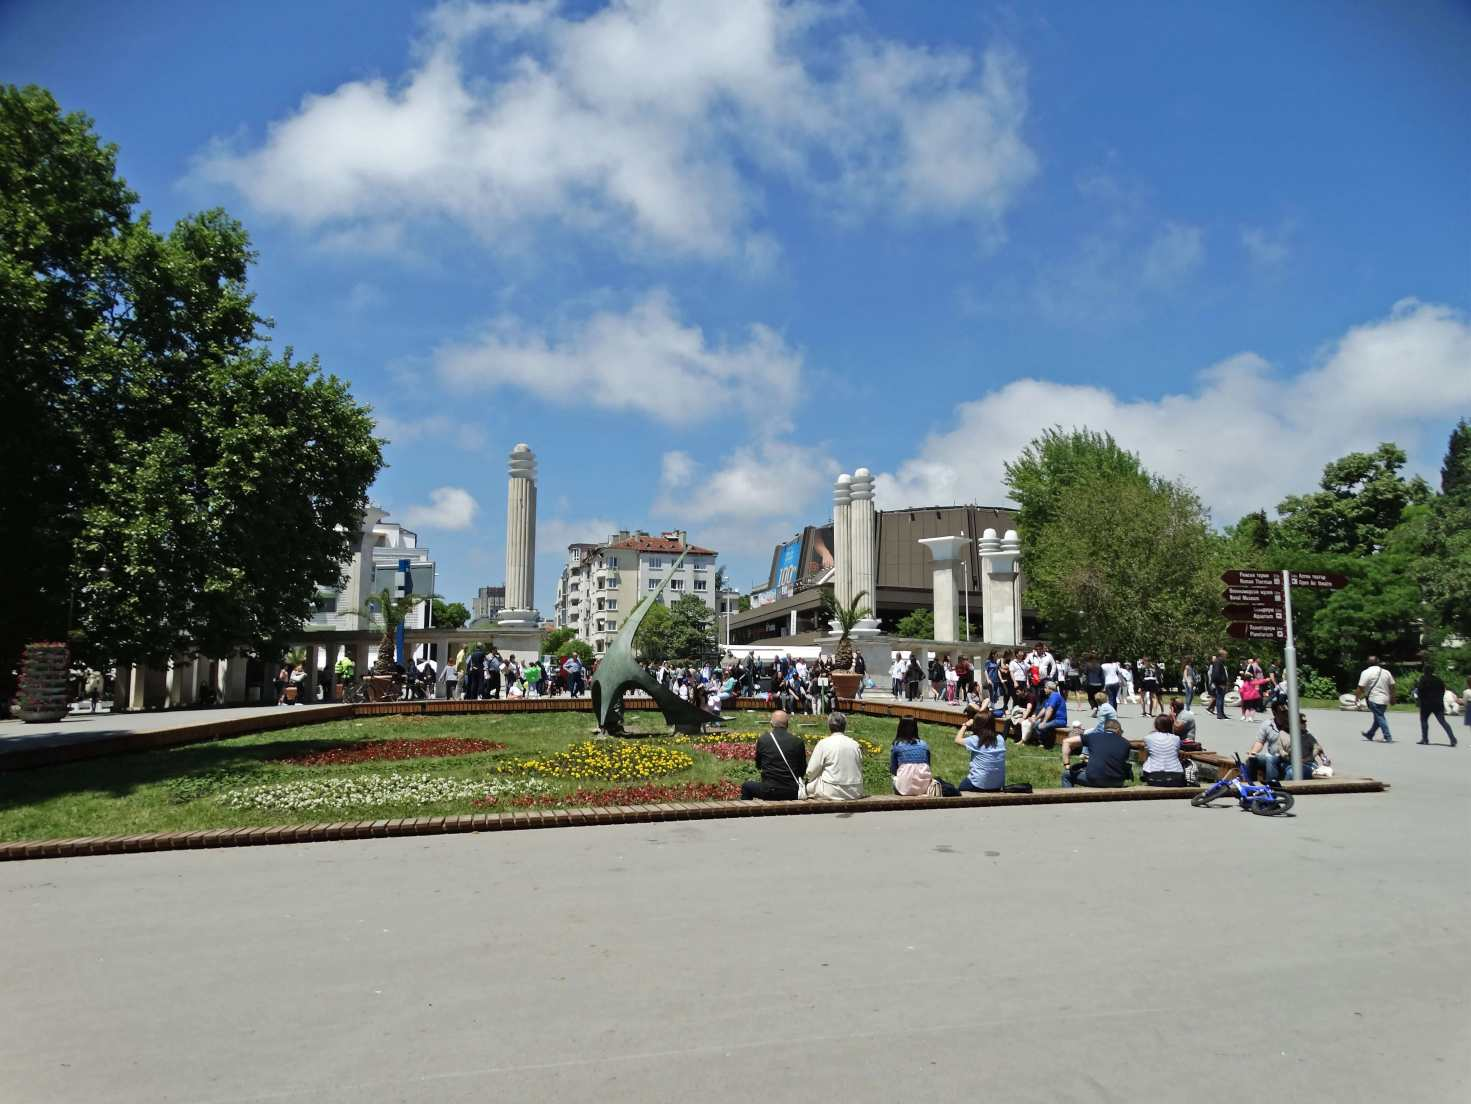 Varna has so many places to visit, attractions and museums